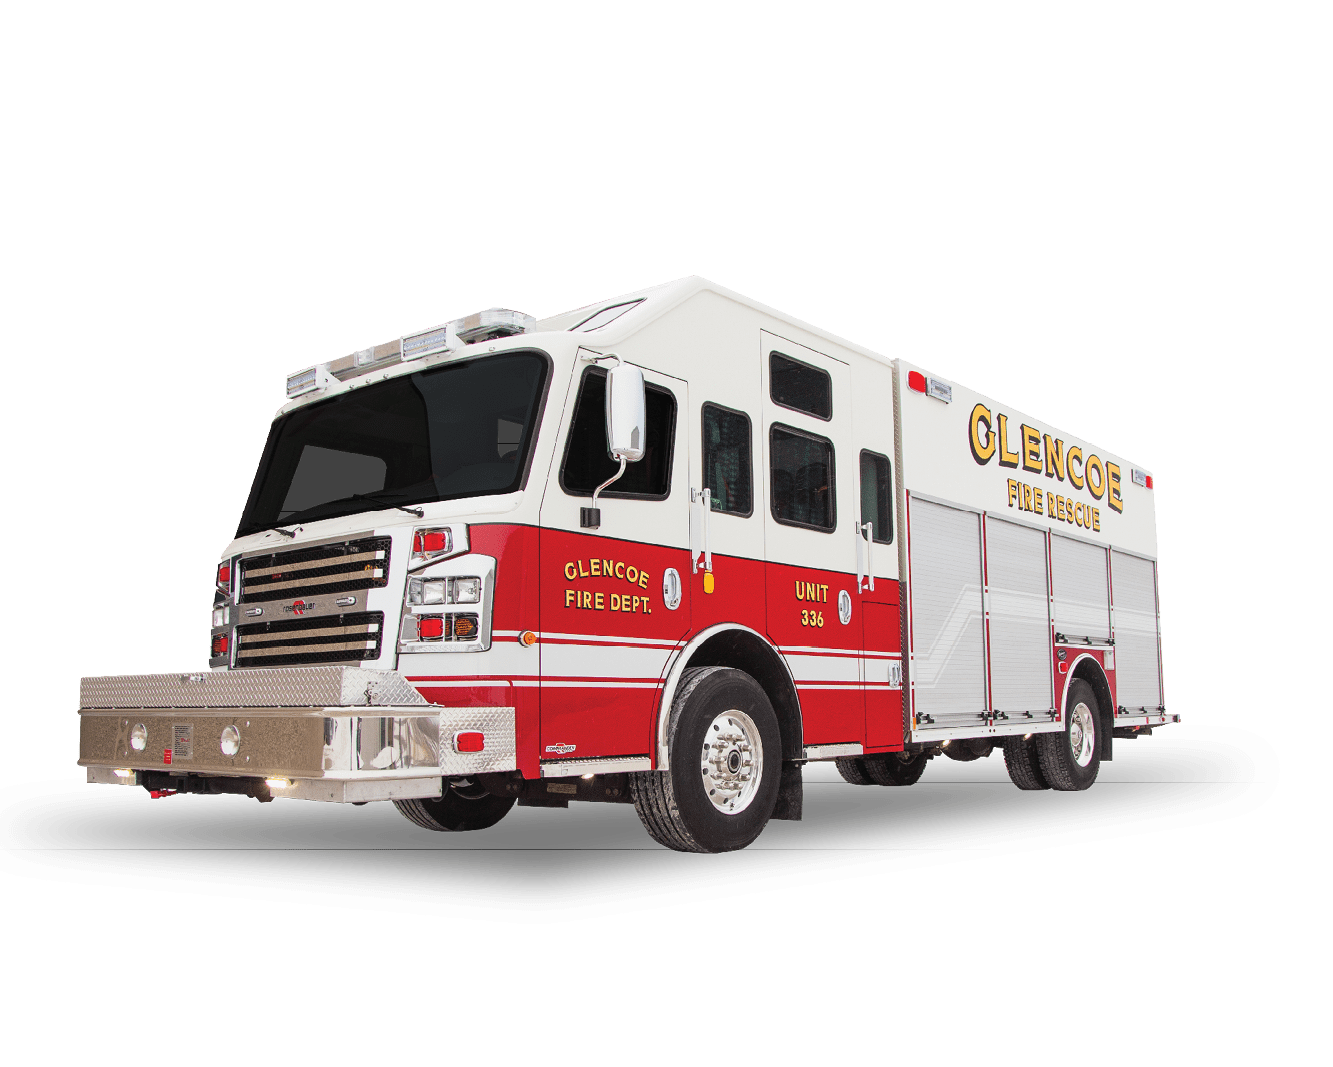 Heiman Fire - Rosenbauer Commander for Glencoe Minnesota